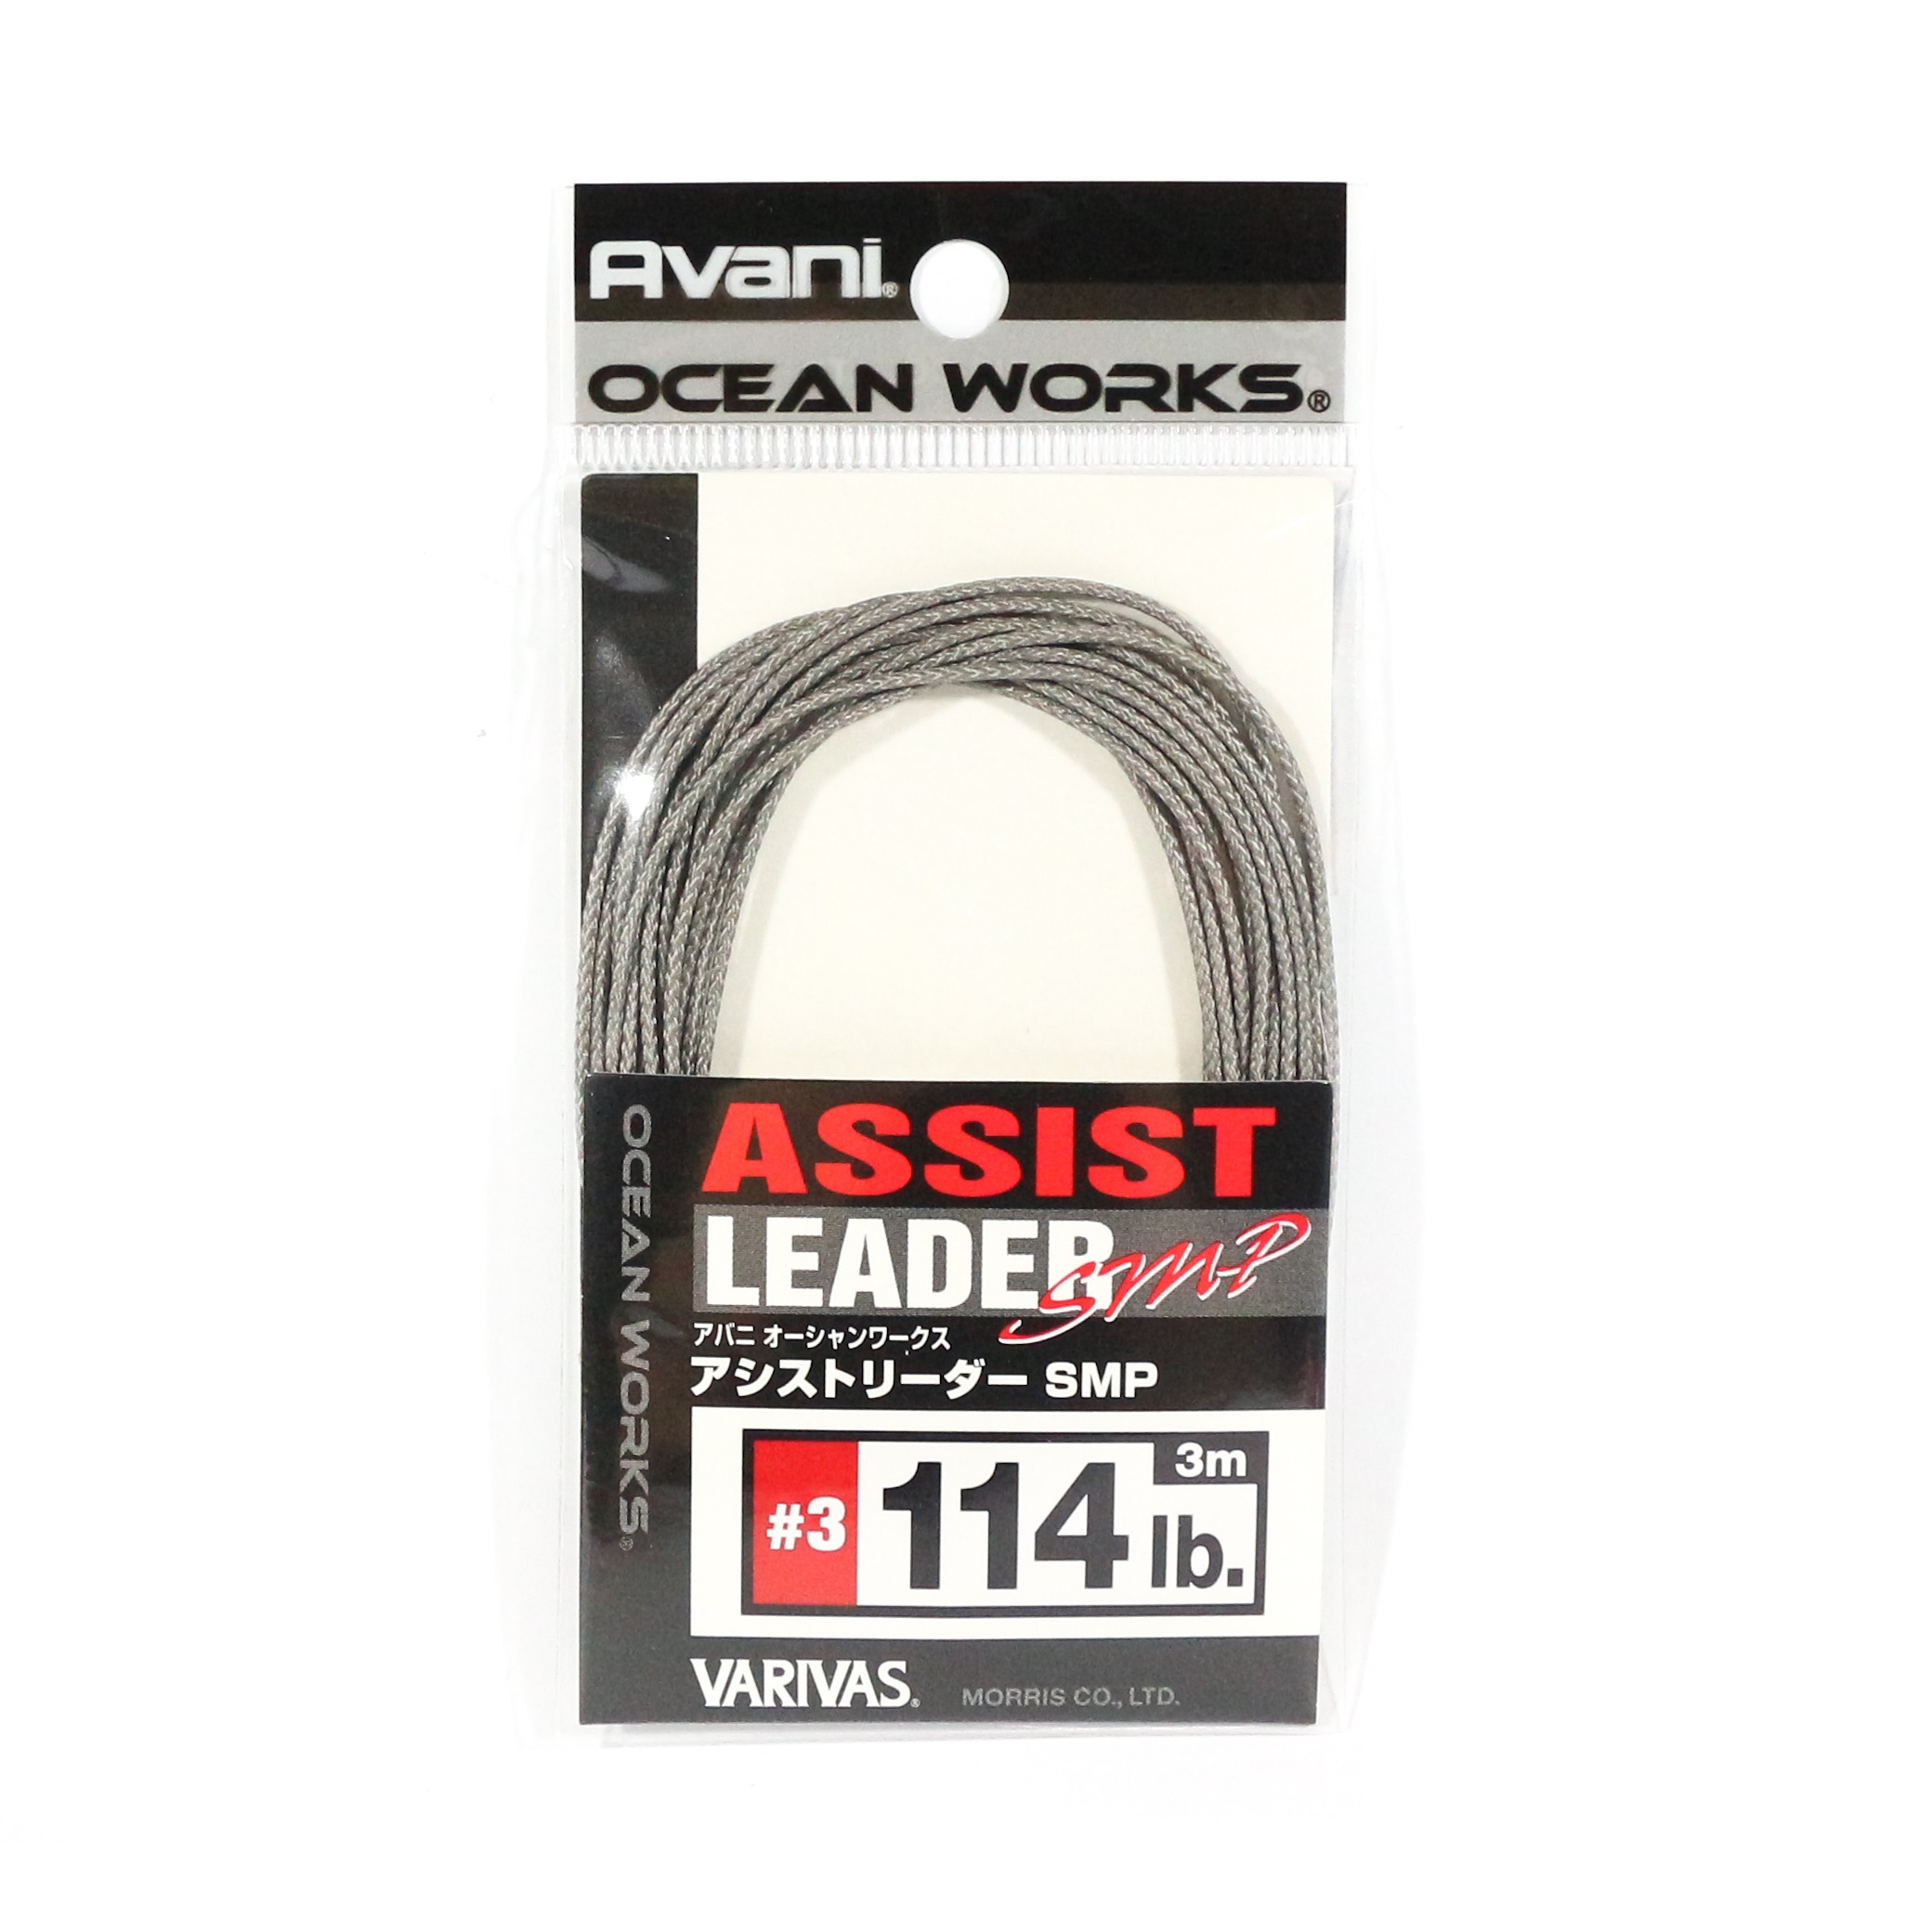 Varivas AH-3 Ocean Works Assist Leader SMP 3 meters #3 114lb (3967)